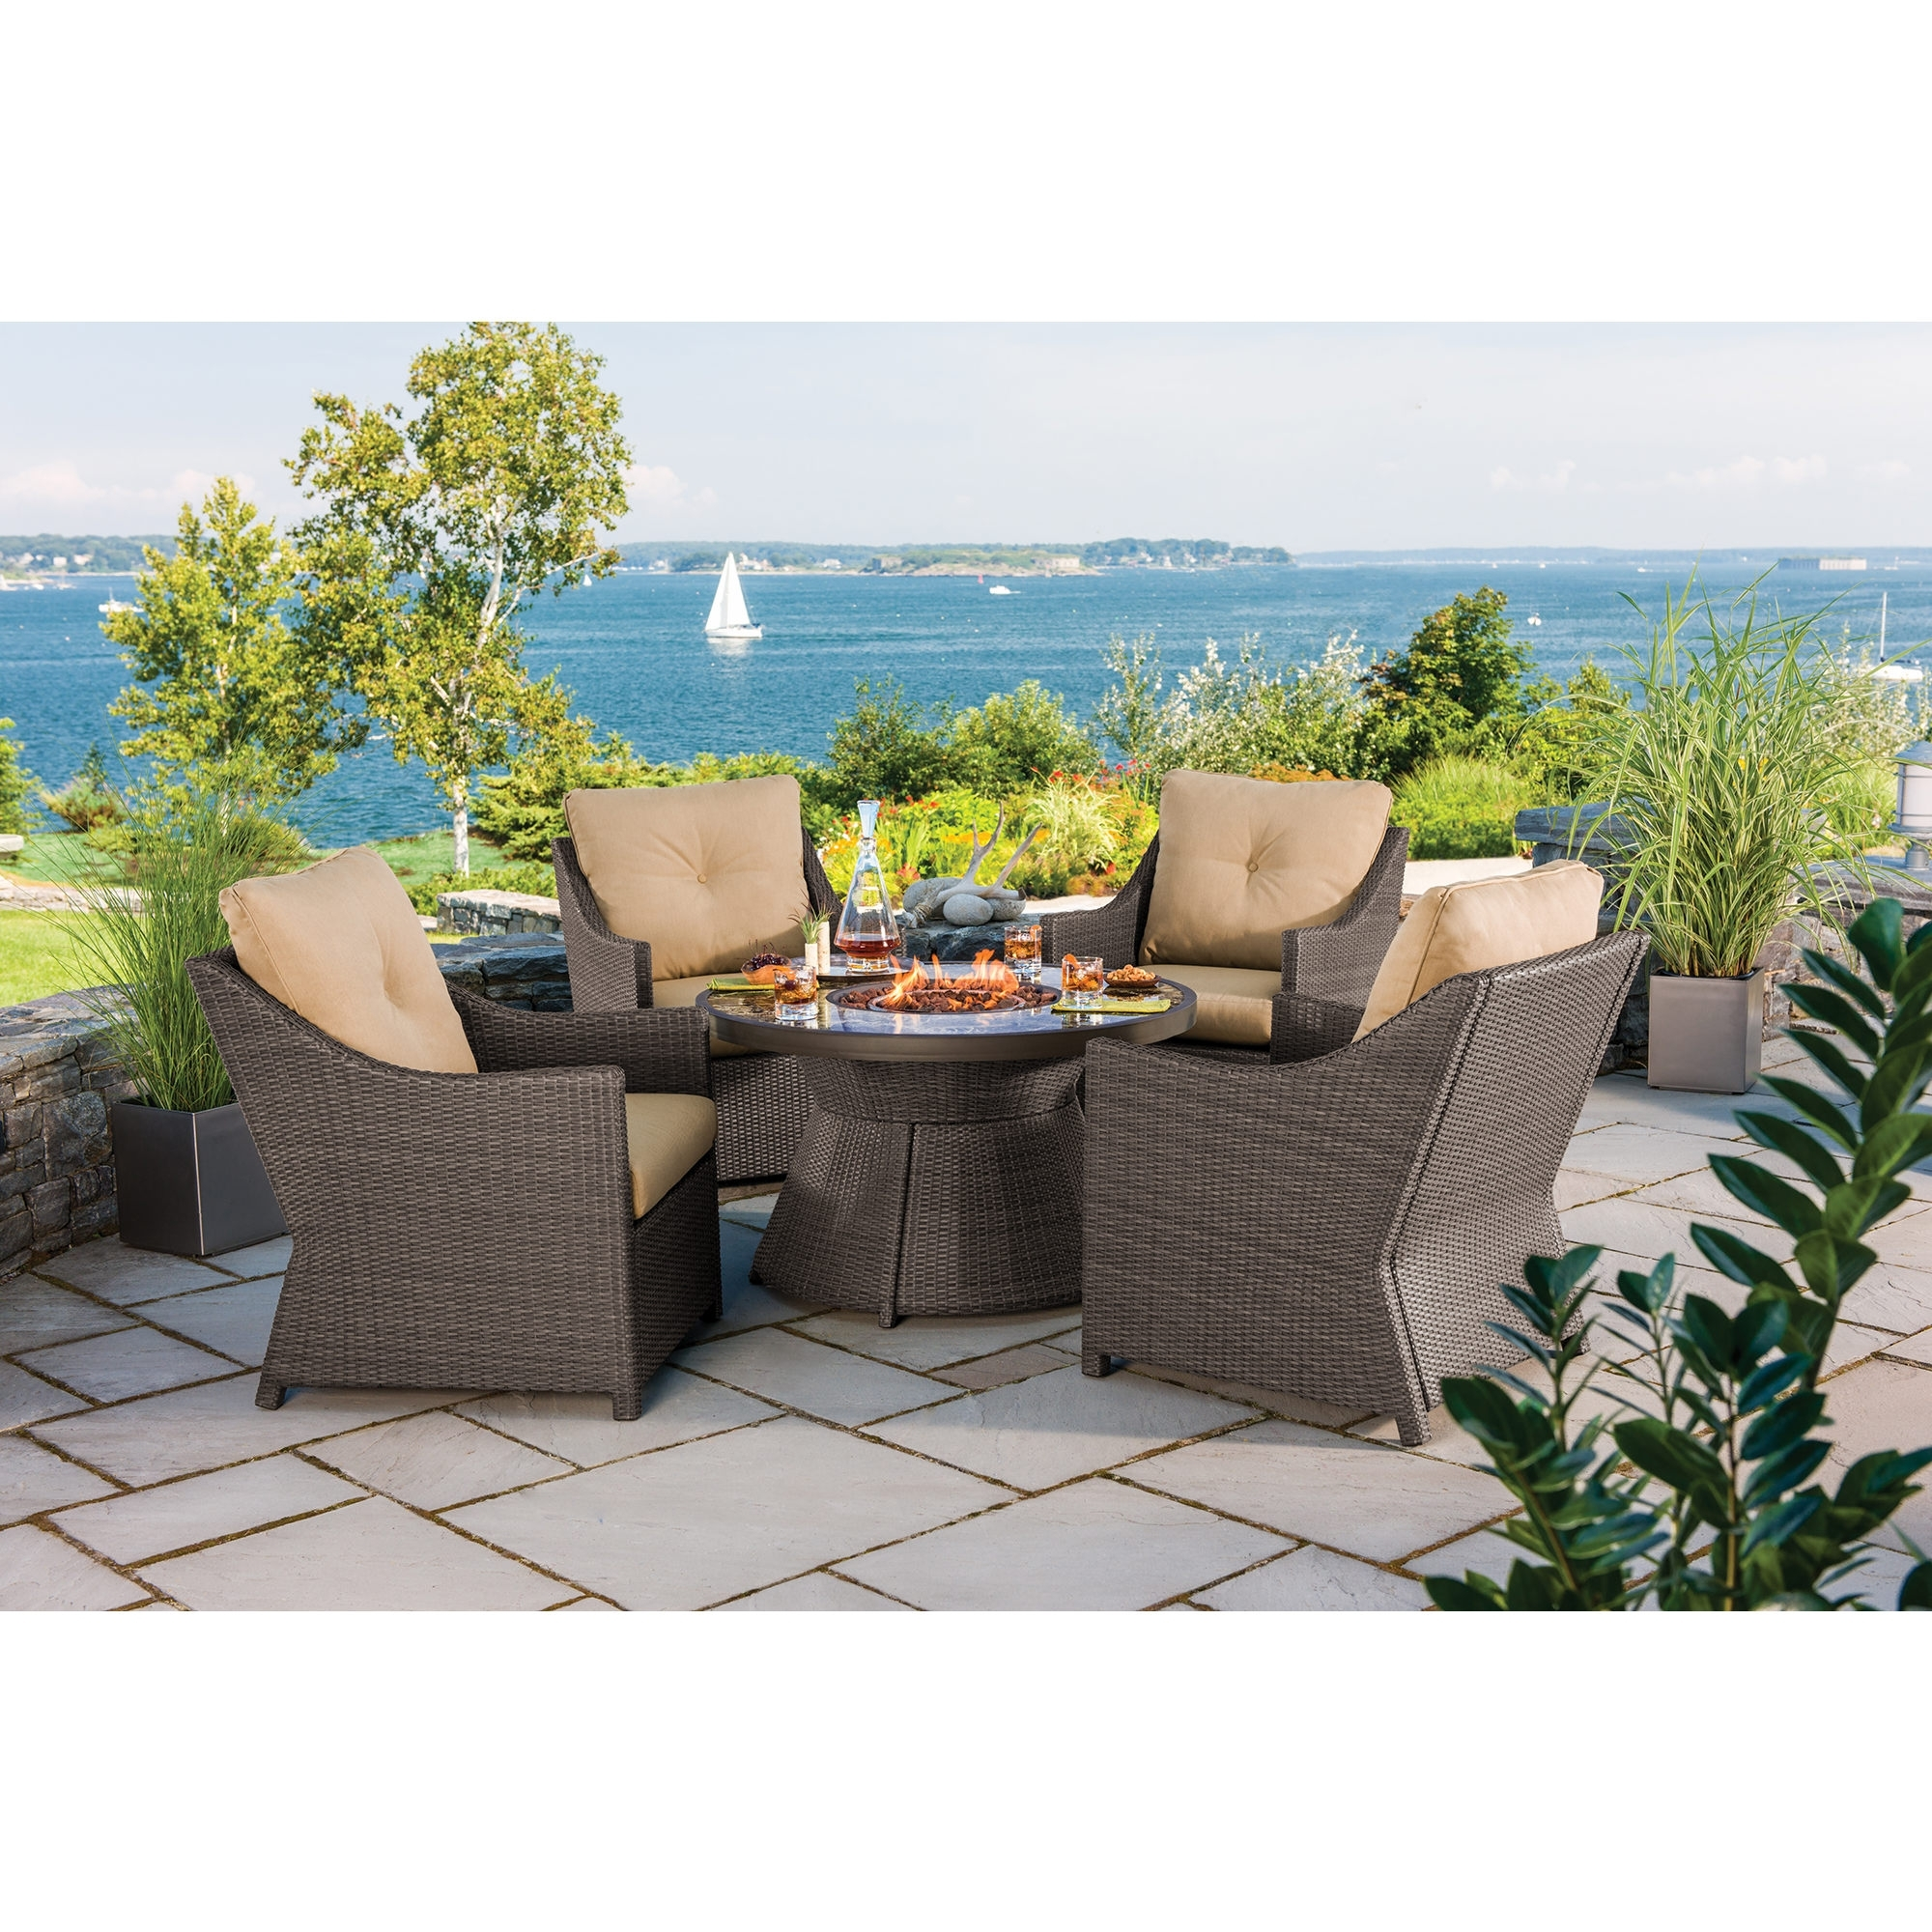 Recent Berkley Jensen Antigua Piece Wicker Fire Pit Chat Set Bjs Propane Throughout Patio Conversation Sets With Propane Fire Pit (View 18 of 20)